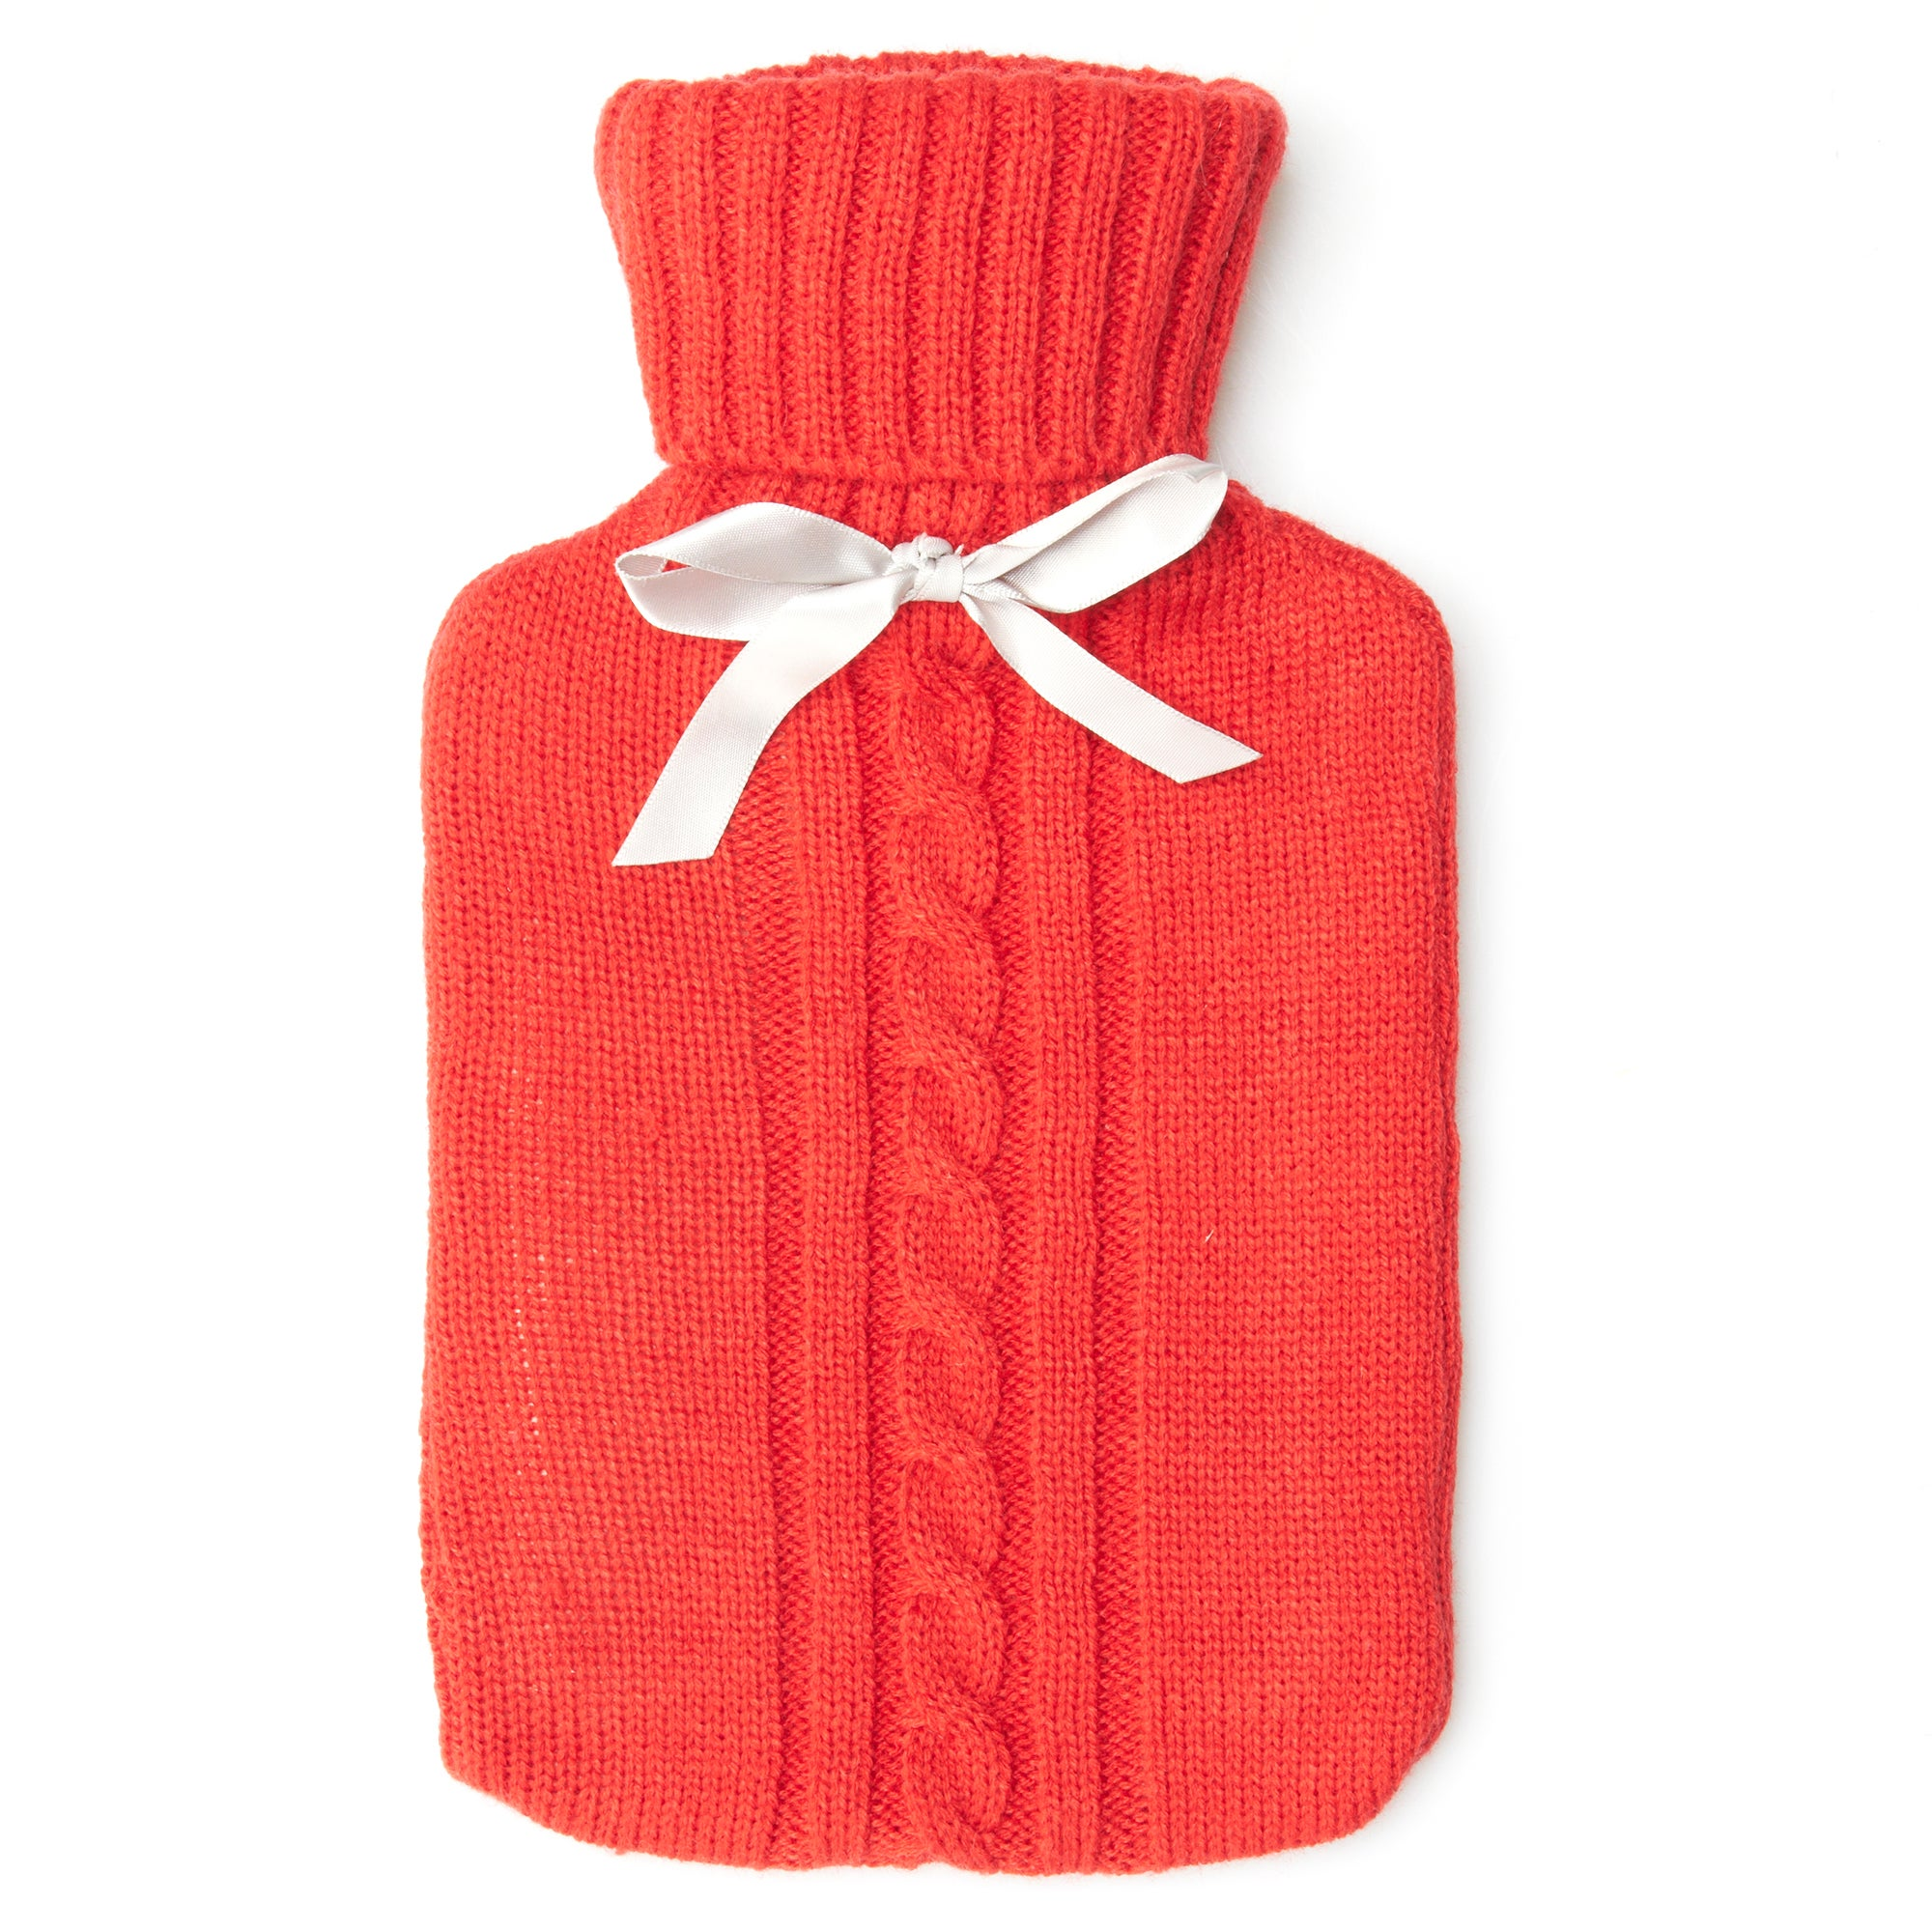 Red Knitted Hot Water Bottle